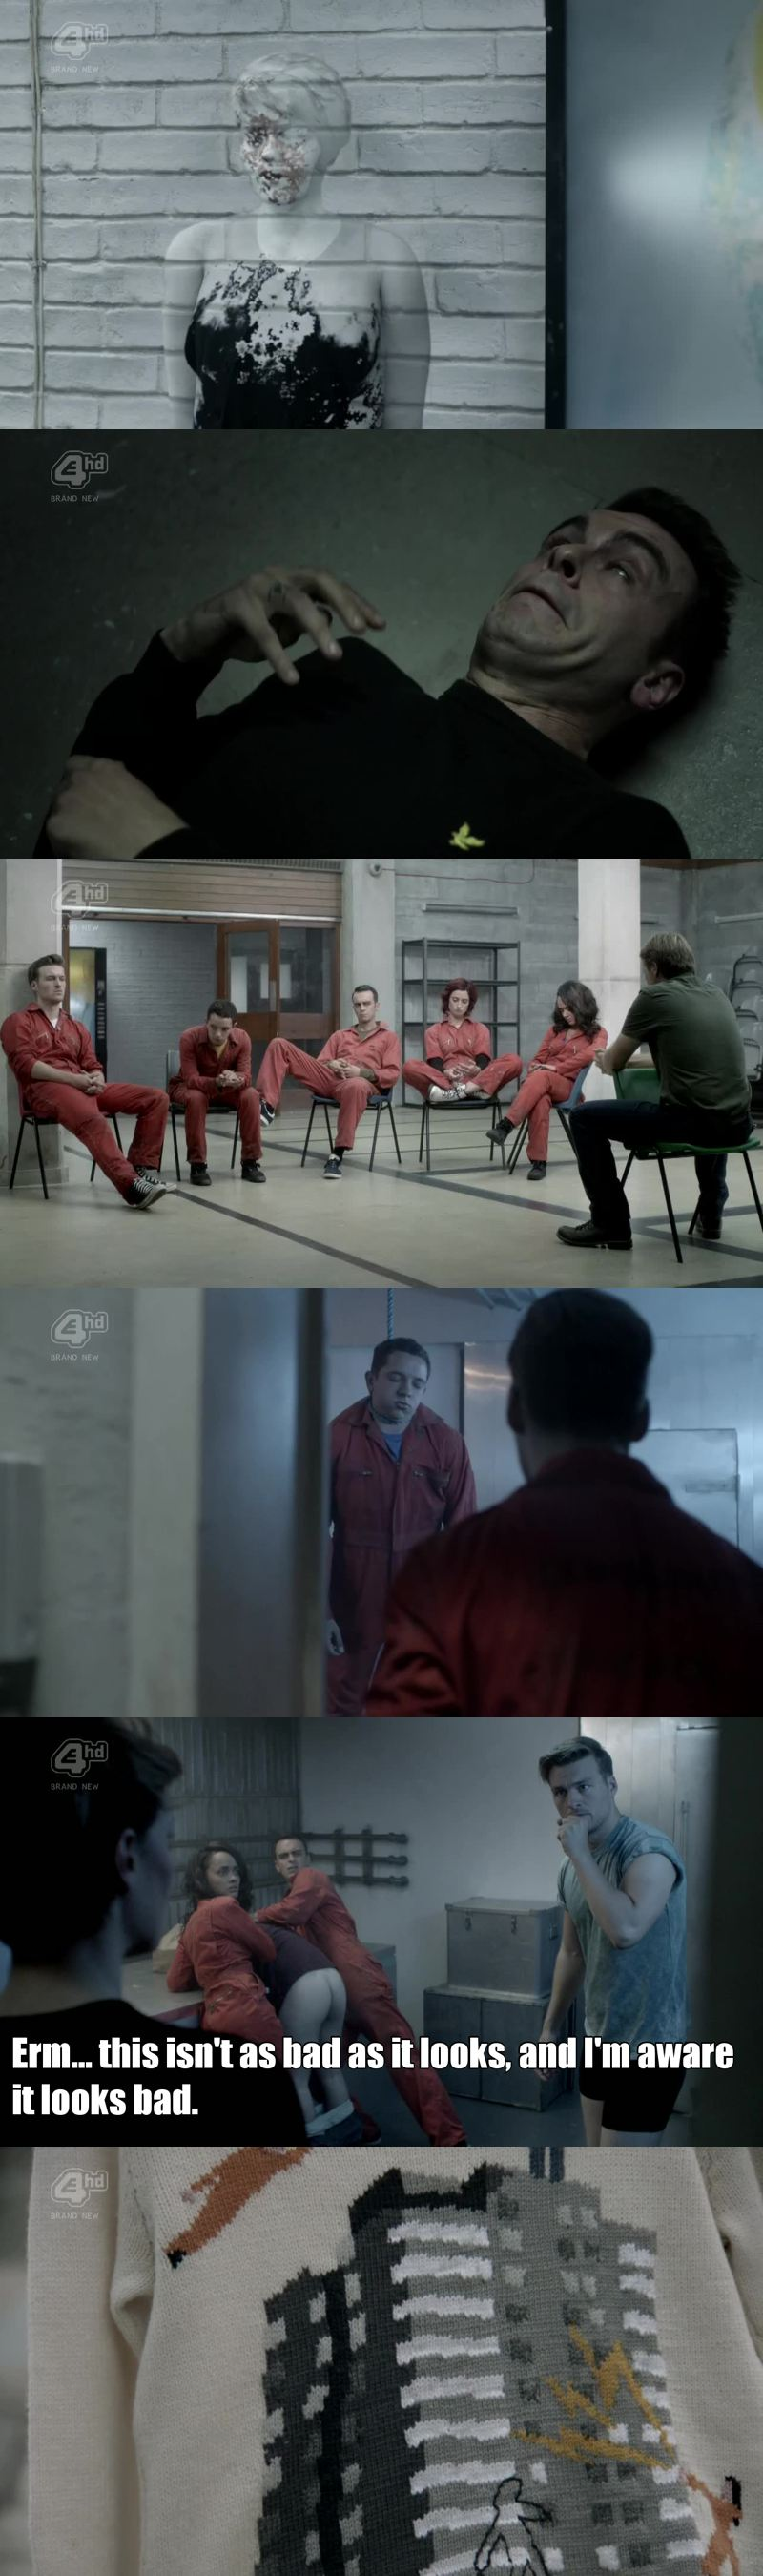 Now there are only two episodes, just now when the new gang'm starting to like is that the series will end and definitely not want it to end.  This was the season with the most fucking weird moments of entire series